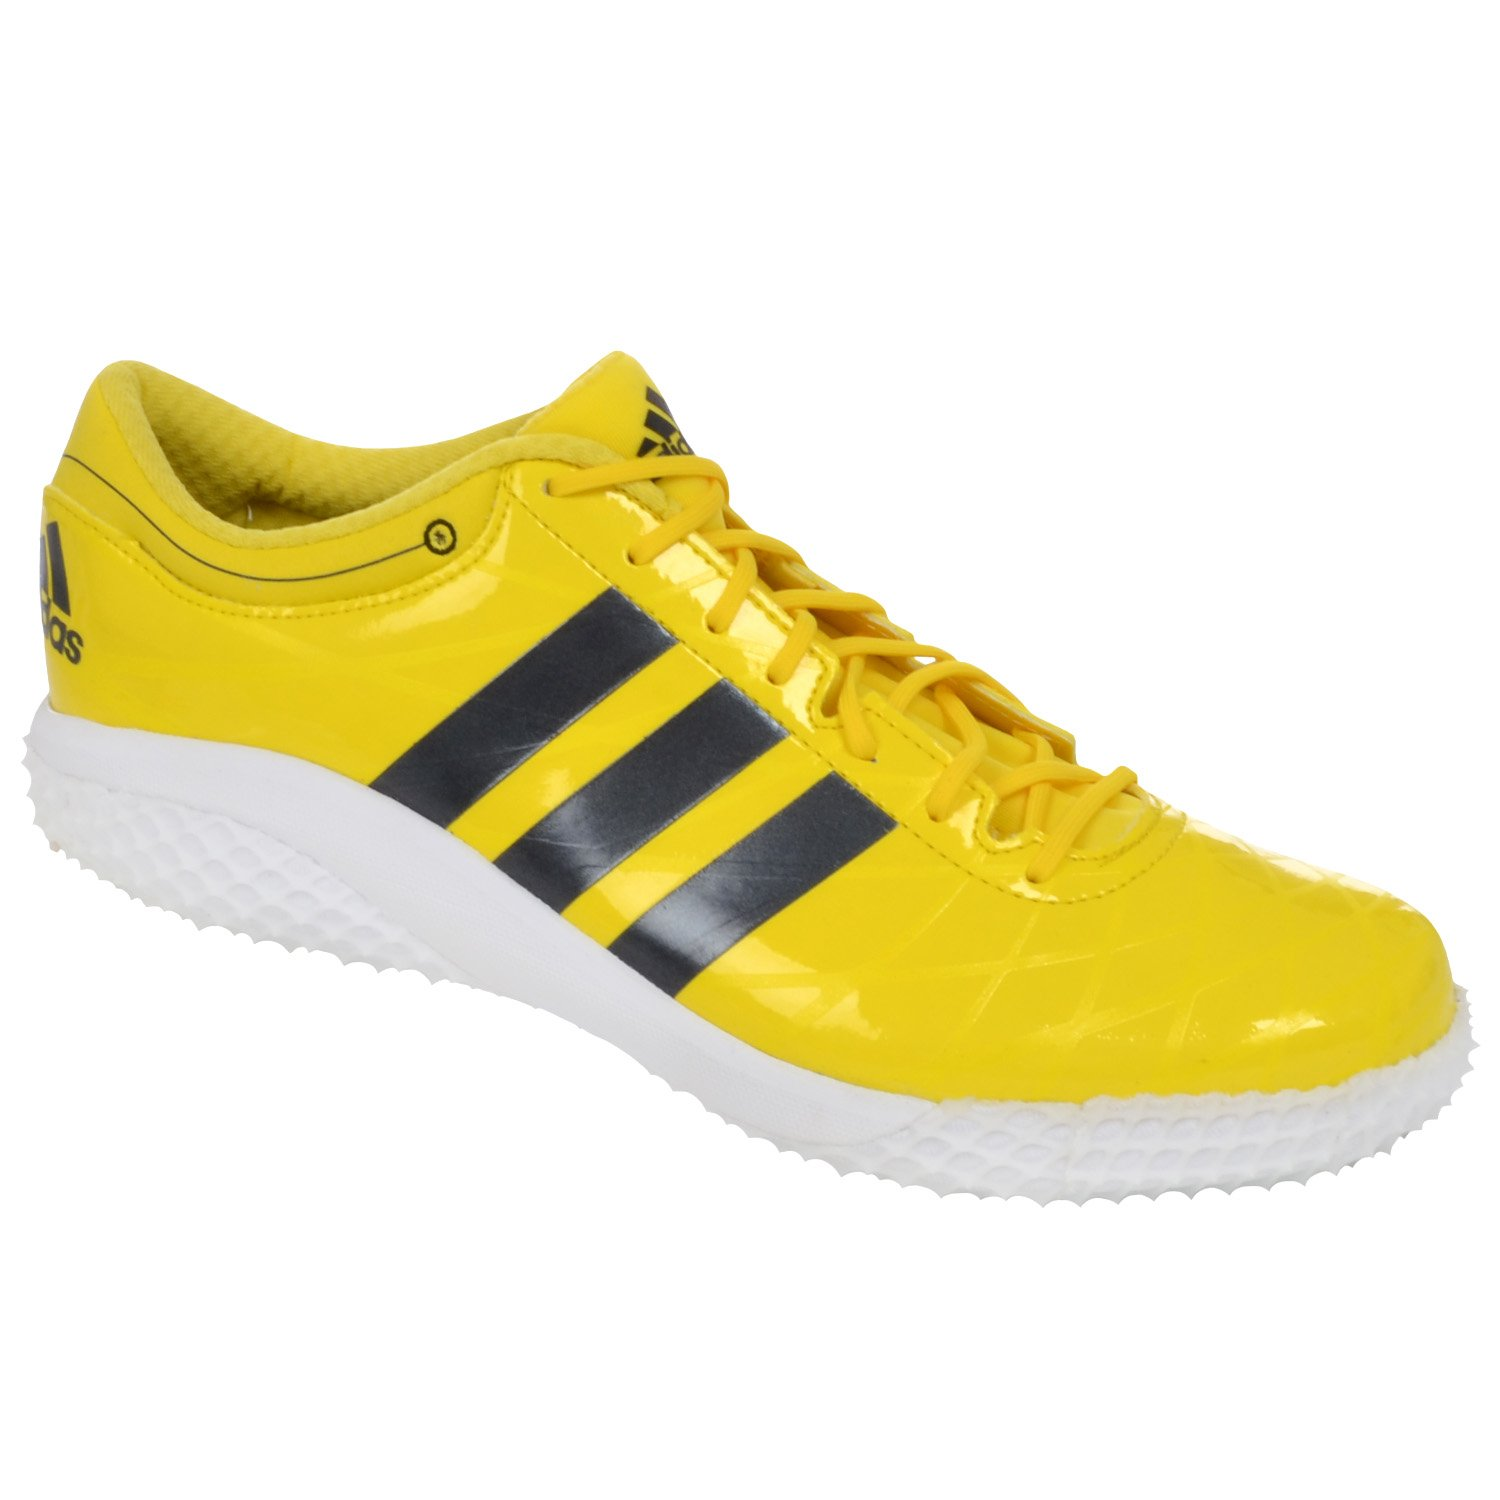 separation shoes 00e80 6b617 adidas Adizero stabilità Campo Caso High Jump, Color Verde, Amarillo 60% de  descuento